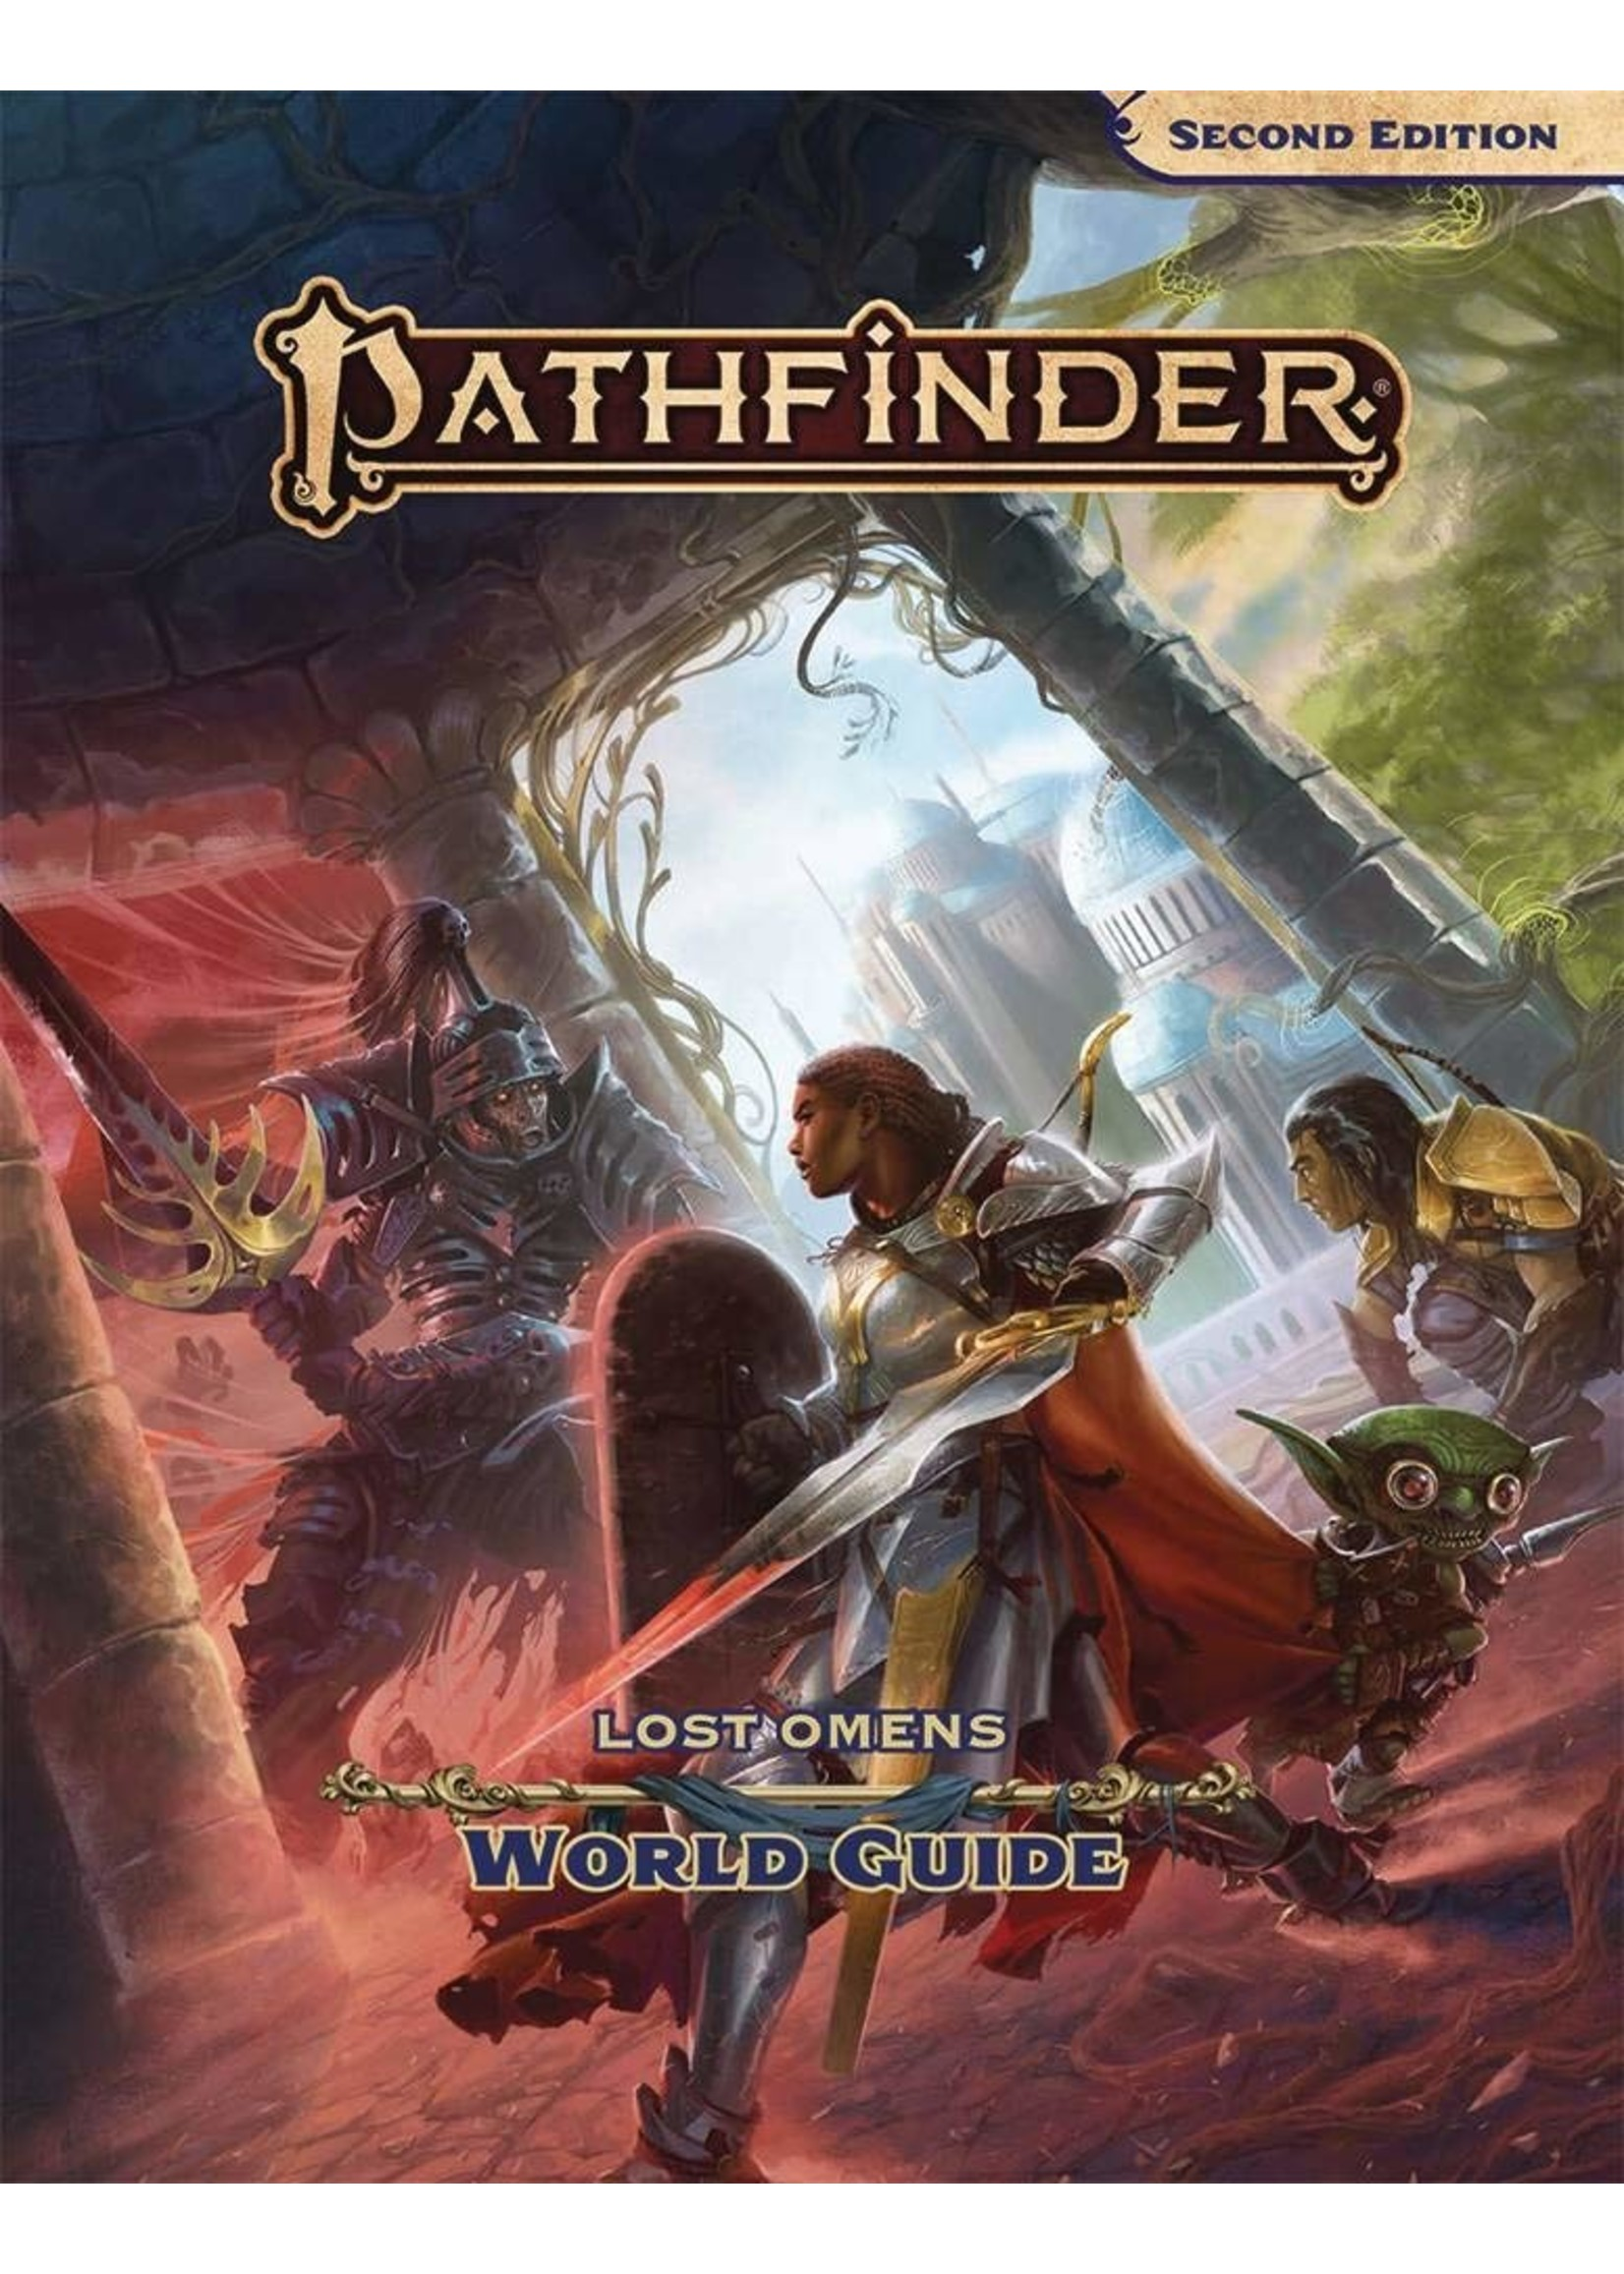 Pathfinder RPG: Lost Omens - World Guide Hardcover (P2)